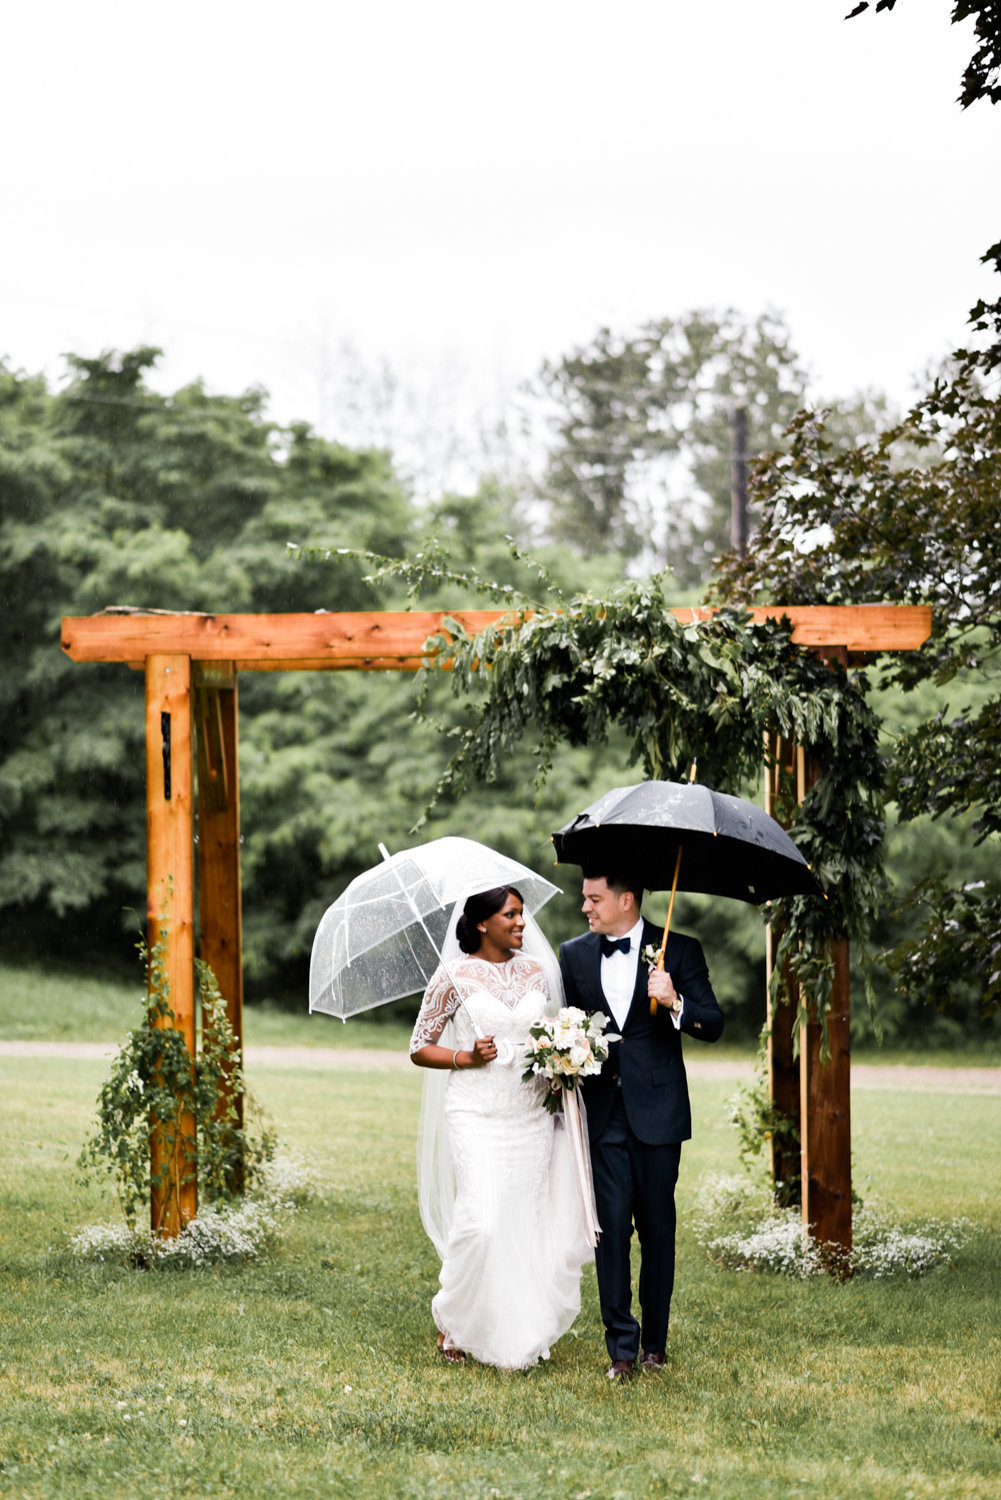 Rain wedding photo